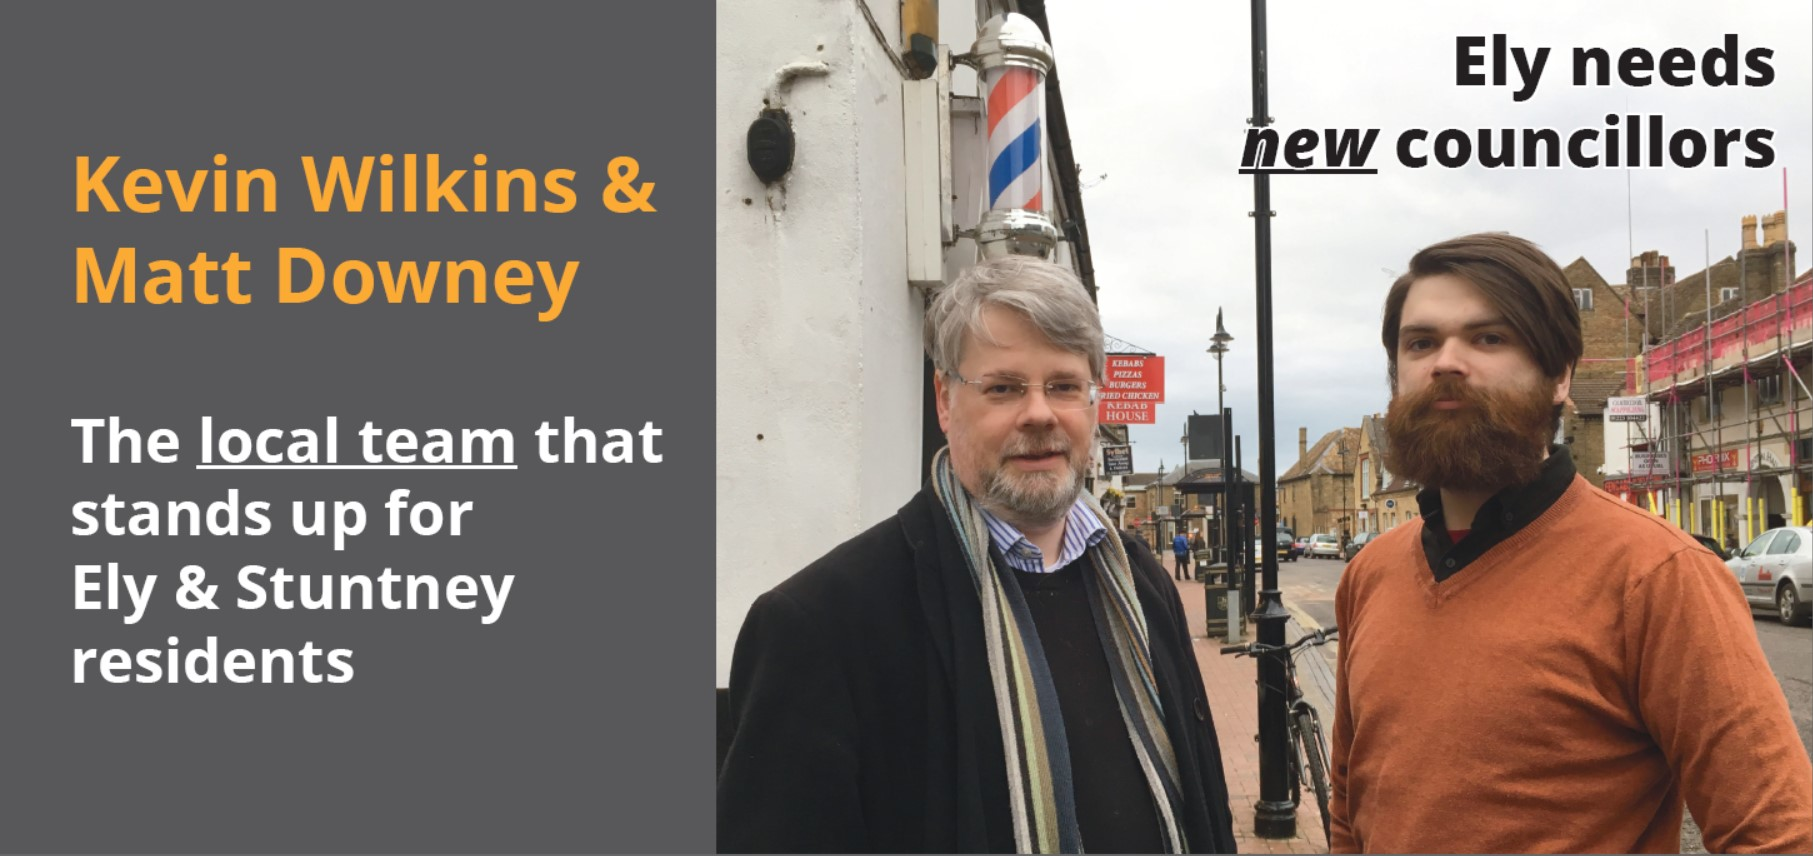 Kevin Wilkins and Matt Downey - Your Ely East Lib Dem Candidates